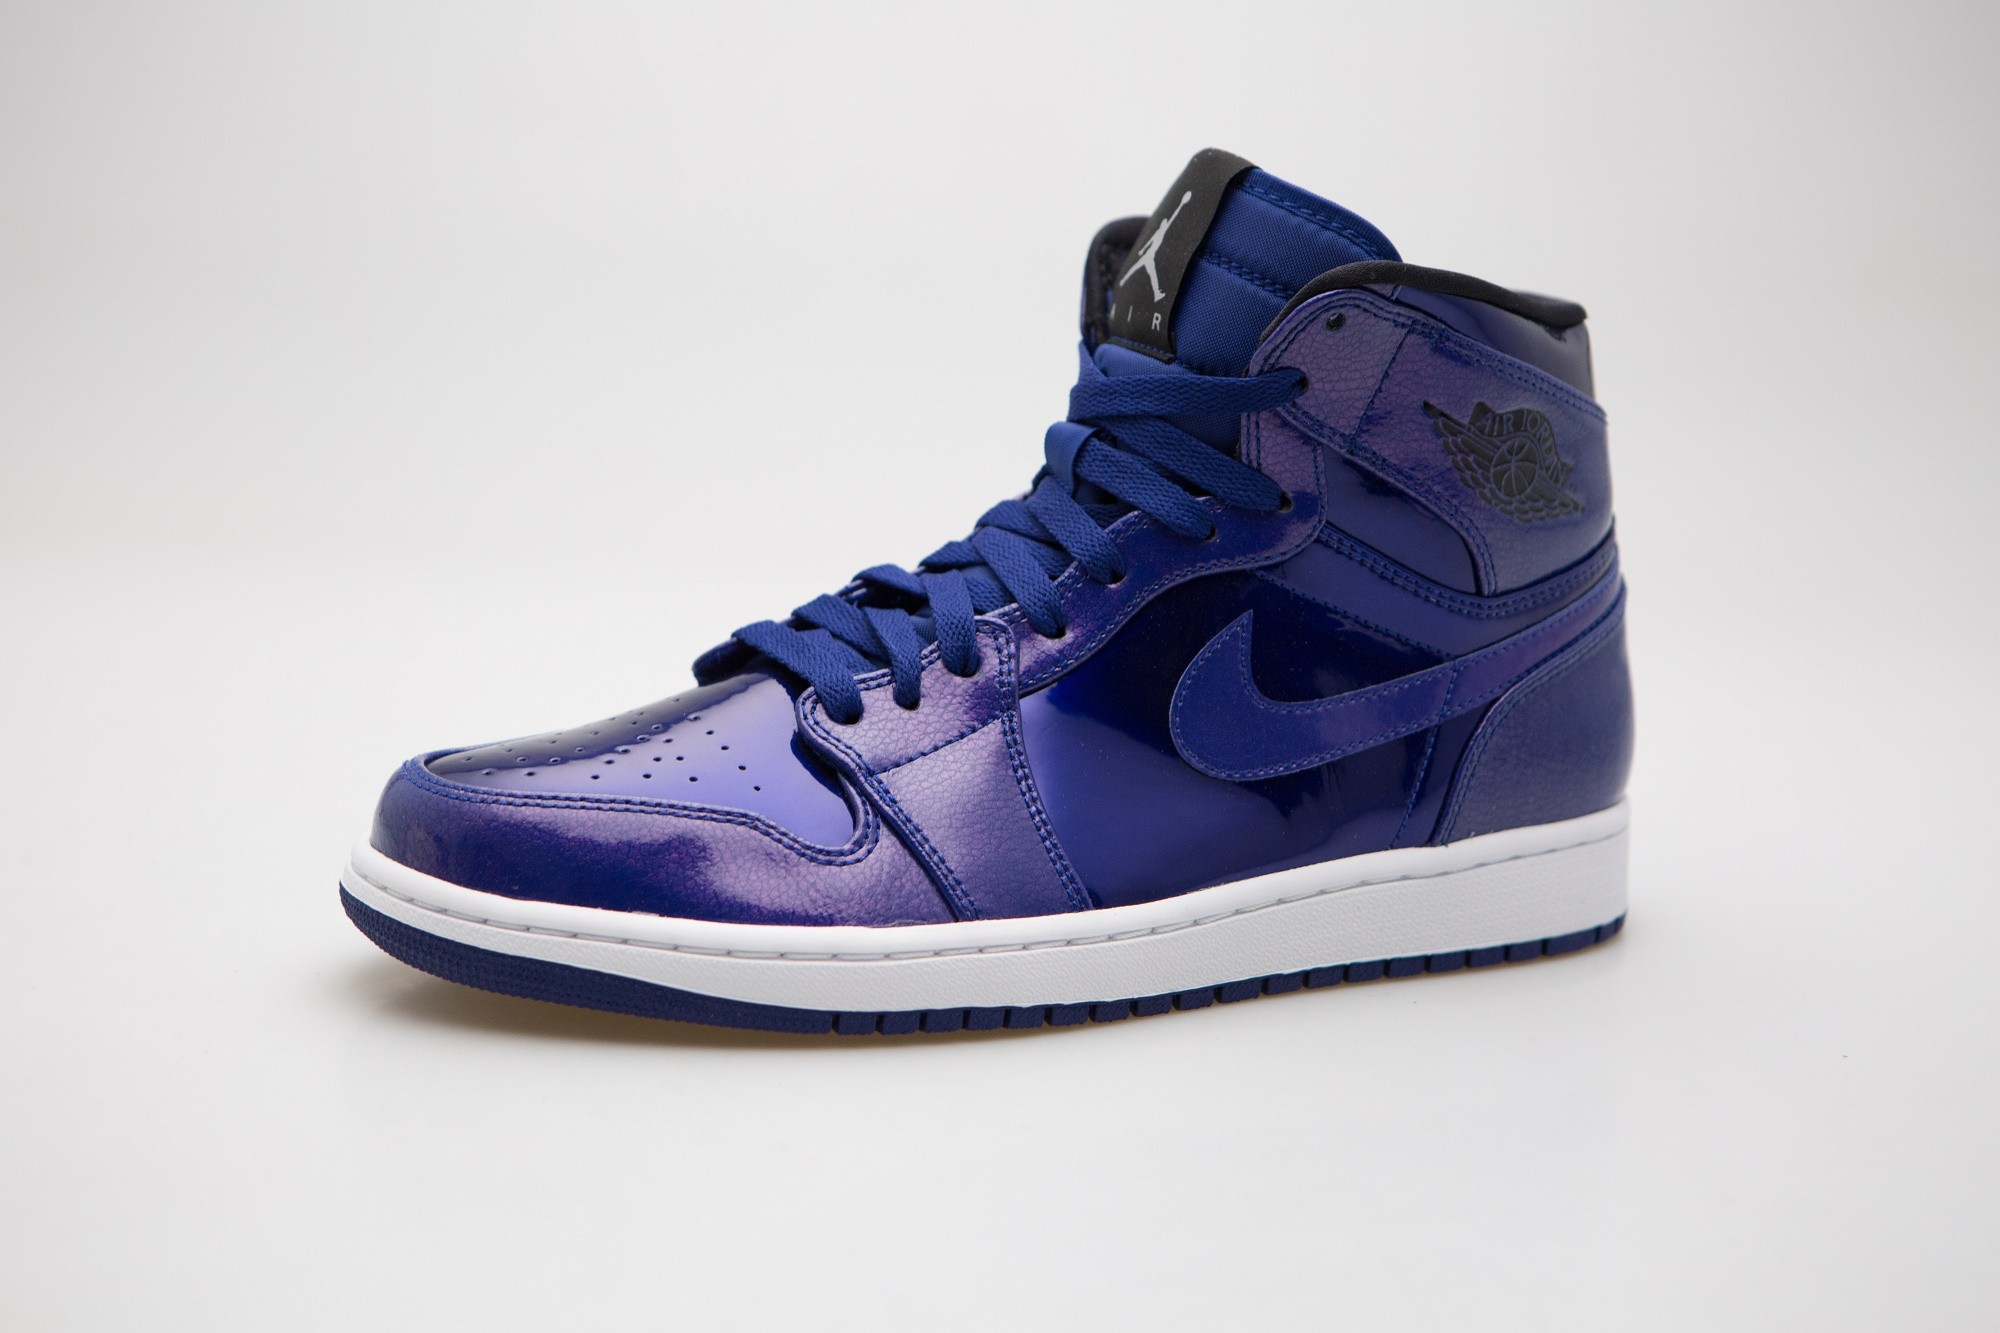 ee5cff0b0a3361 332550-420 Air Jordan 1 Retro High Men Anti Gravity Patent Deep ...